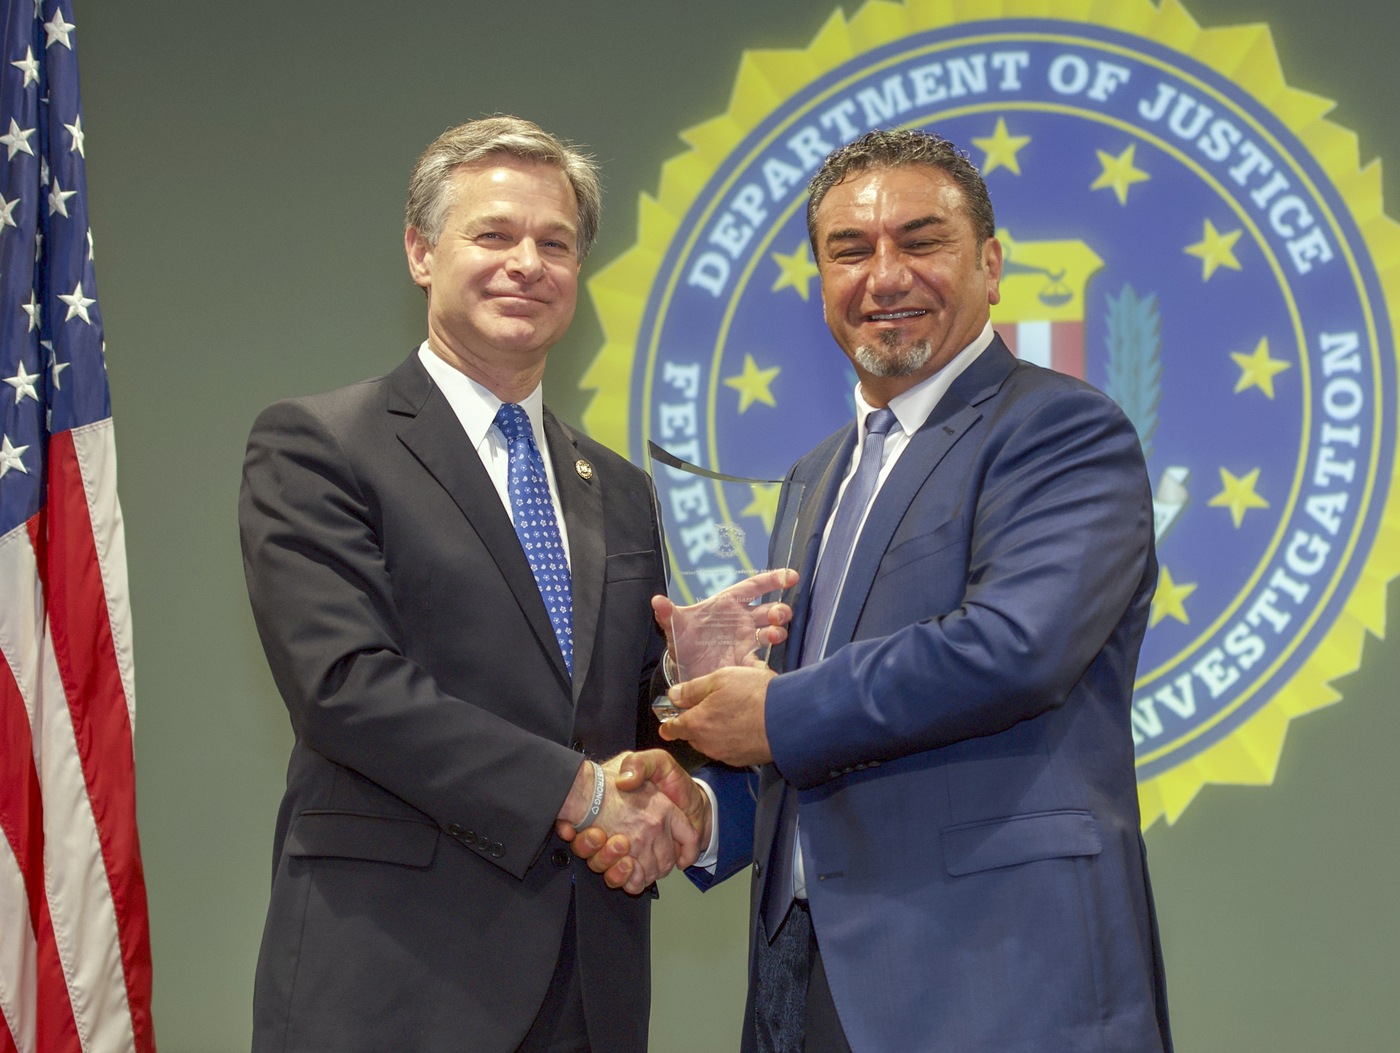 FBI Director Christopher Wray presents Detroit Division recipient Youssef Joe Bazzi with the Director's Community Leadership Award (DCLA) at a ceremony at FBI Headquarters on May 3, 2019.